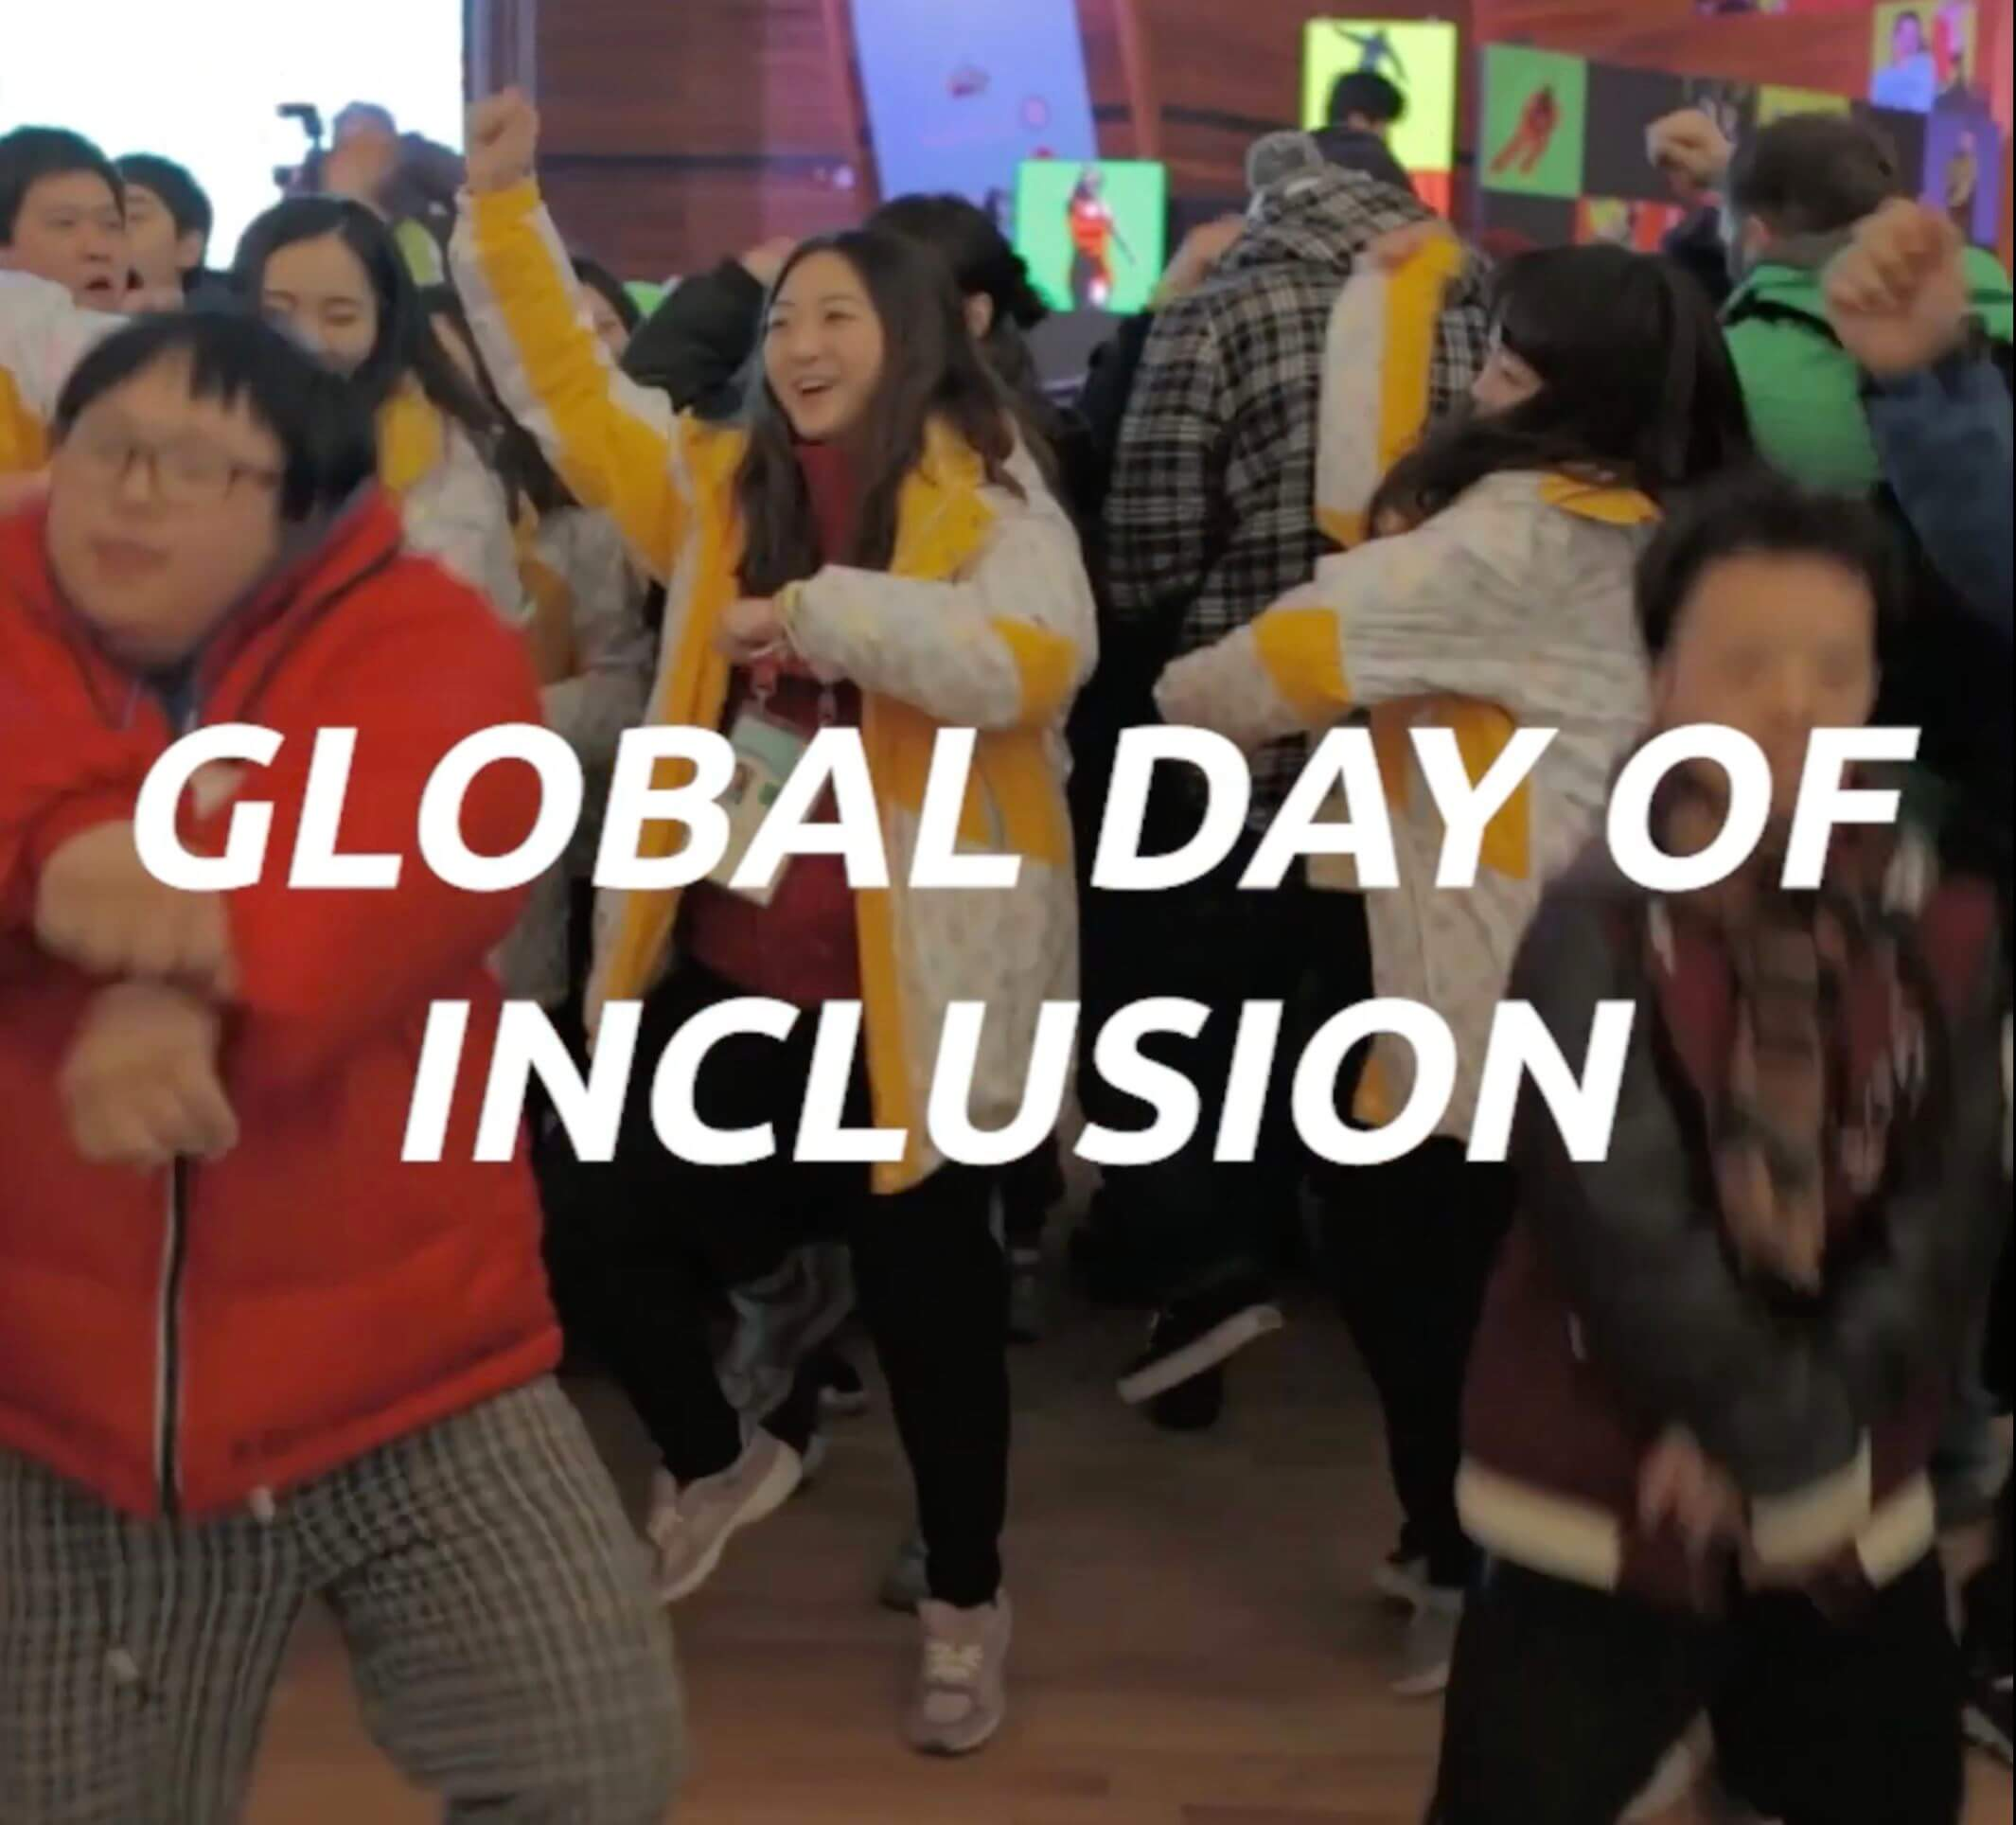 Global Day of Inclusion